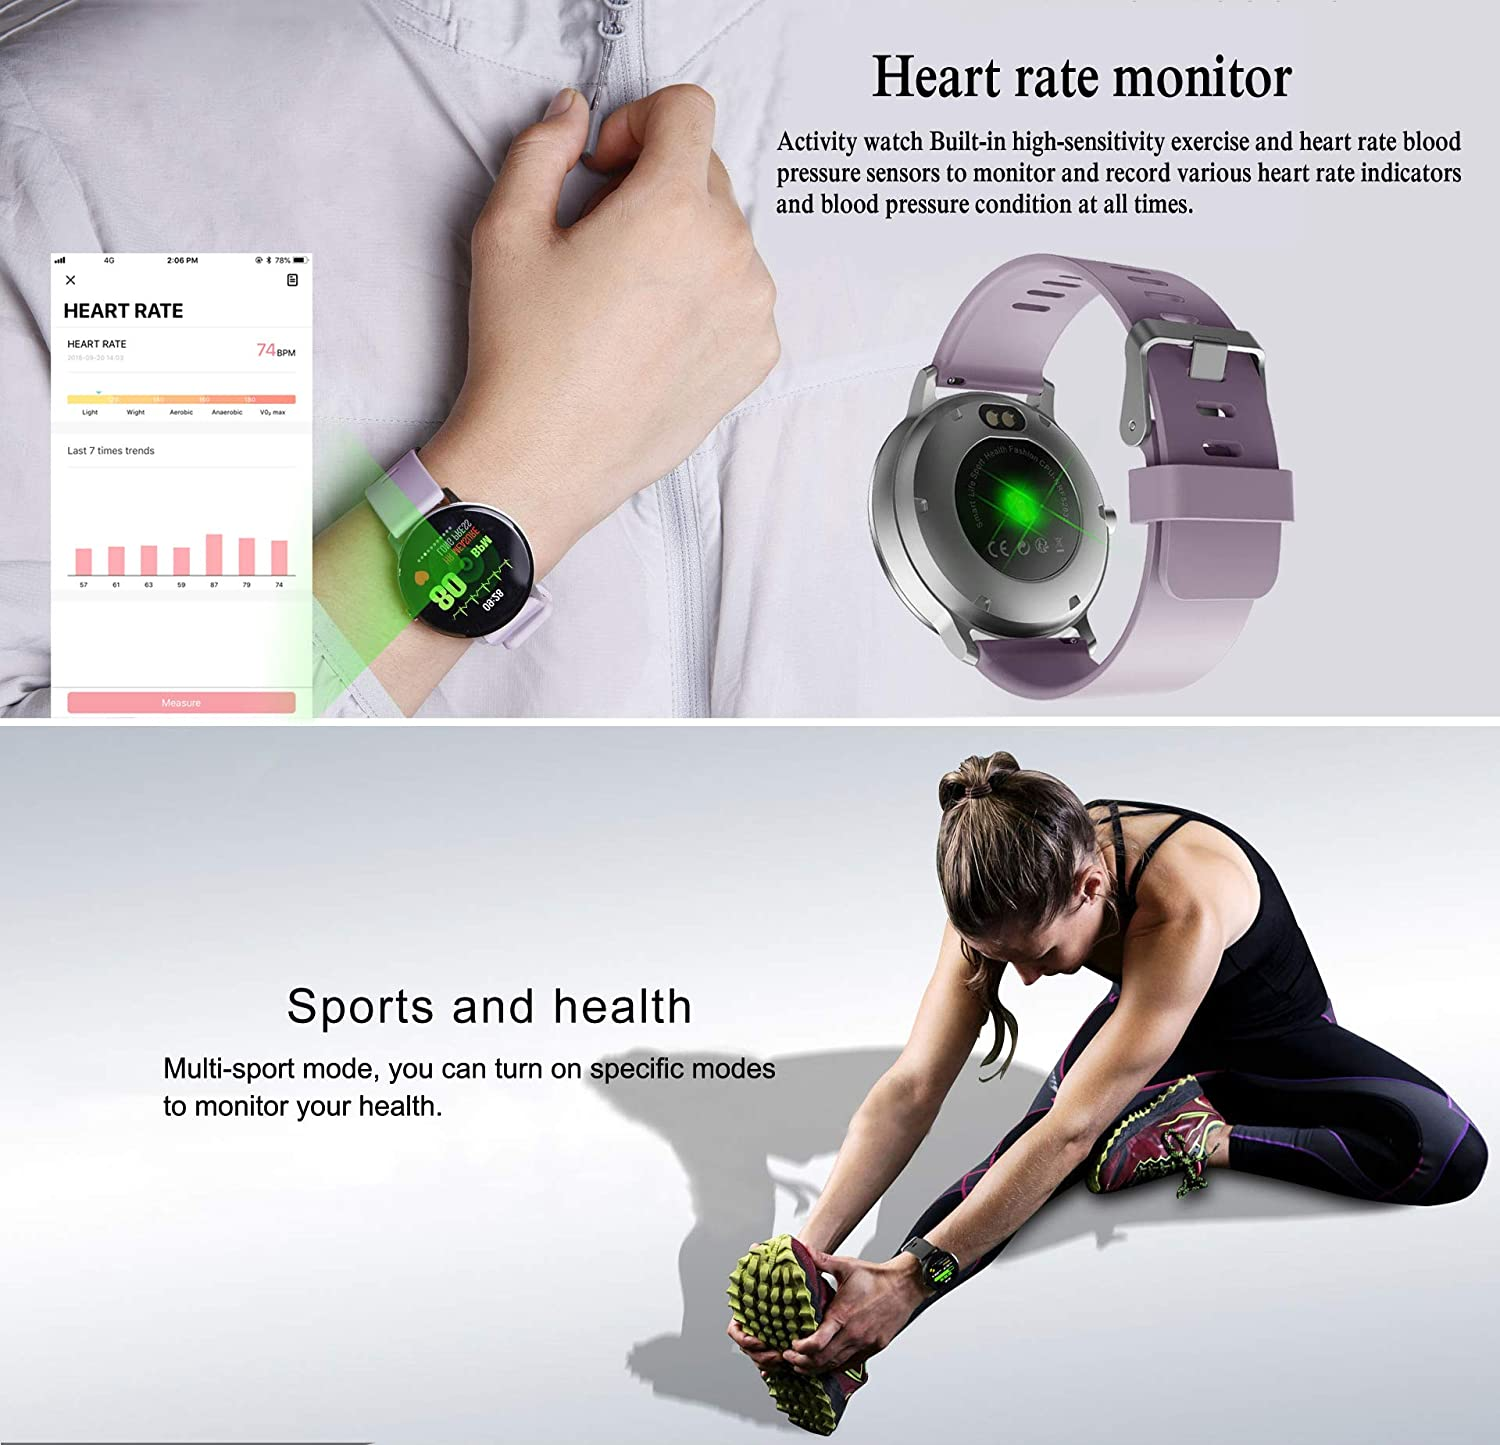 Amazon.com: Smart Watch,Fitness Tracker with Heart Rate & Blood Pressure Monitor for Android & iOS, Waterproof Activity Tracker Watch with Sleep & Blood ...